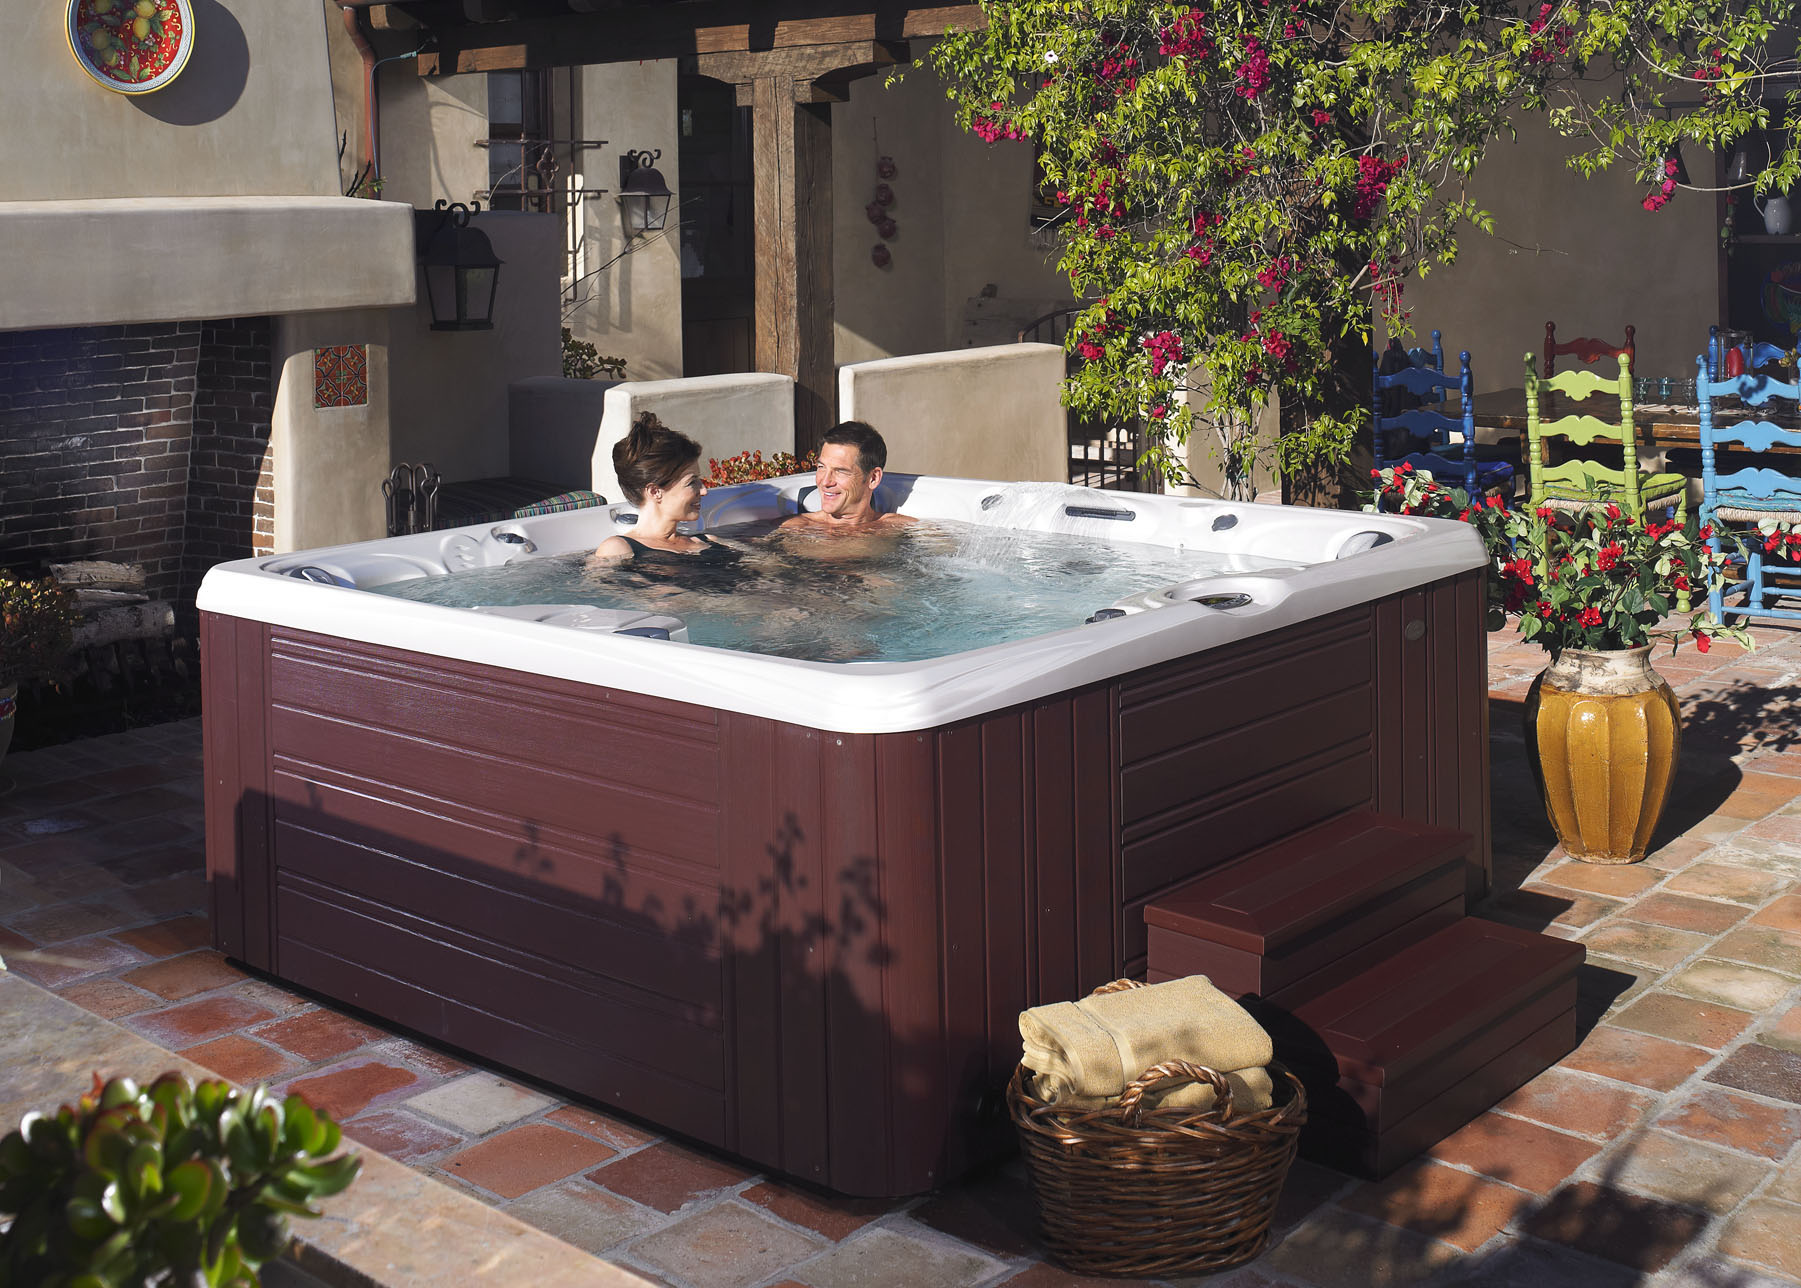 tub tubs ideas full outstanding size best heater good spring parts manual hot amazing of watkins spa sales nice